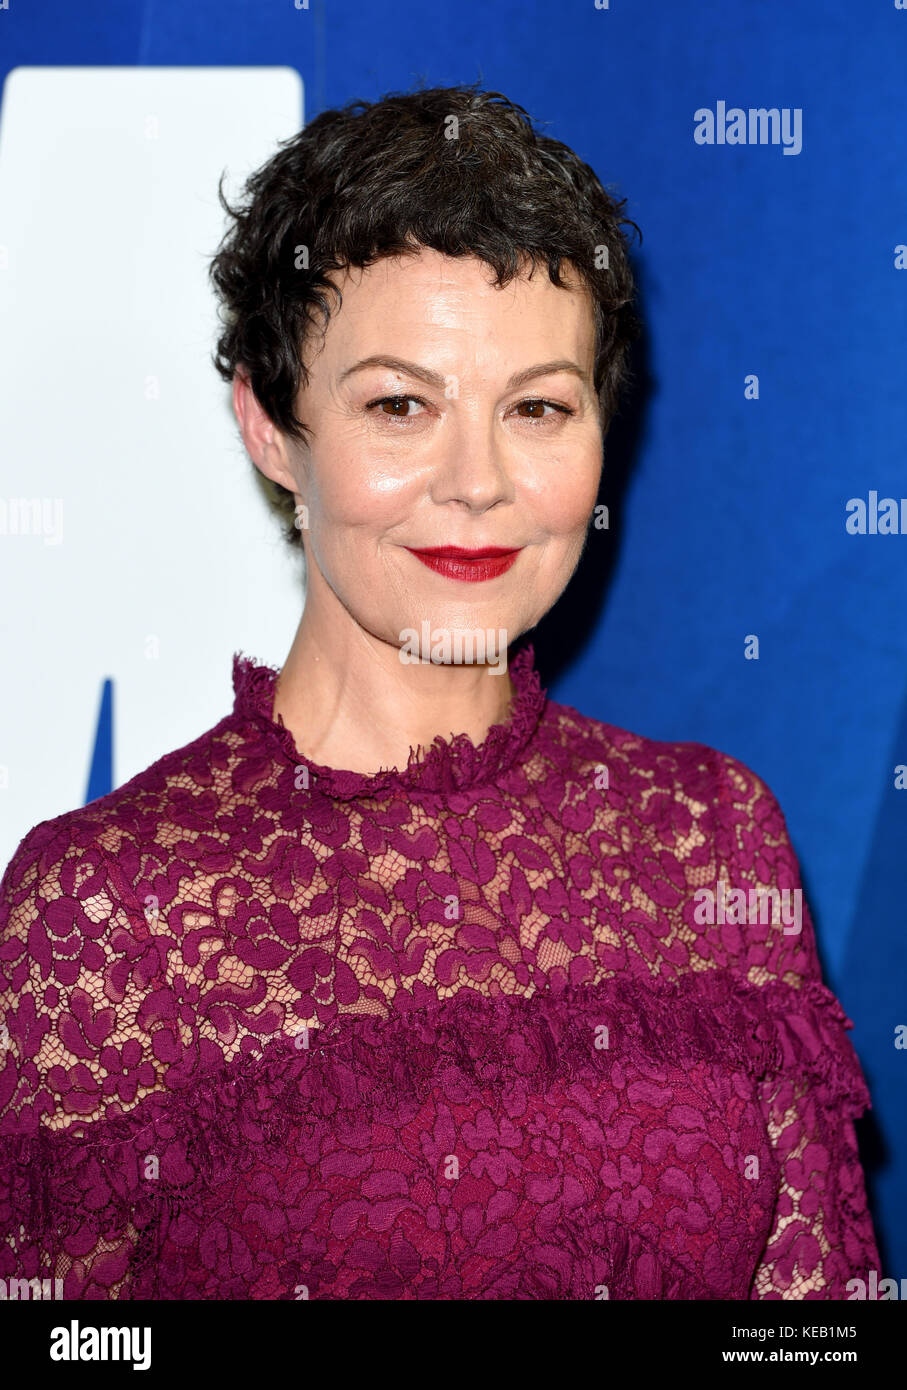 Photo Must Be Credited ©Alpha Press 079965 14/10/2017 Helen McCrory London Film Festival Awards 2017  during - Stock Image